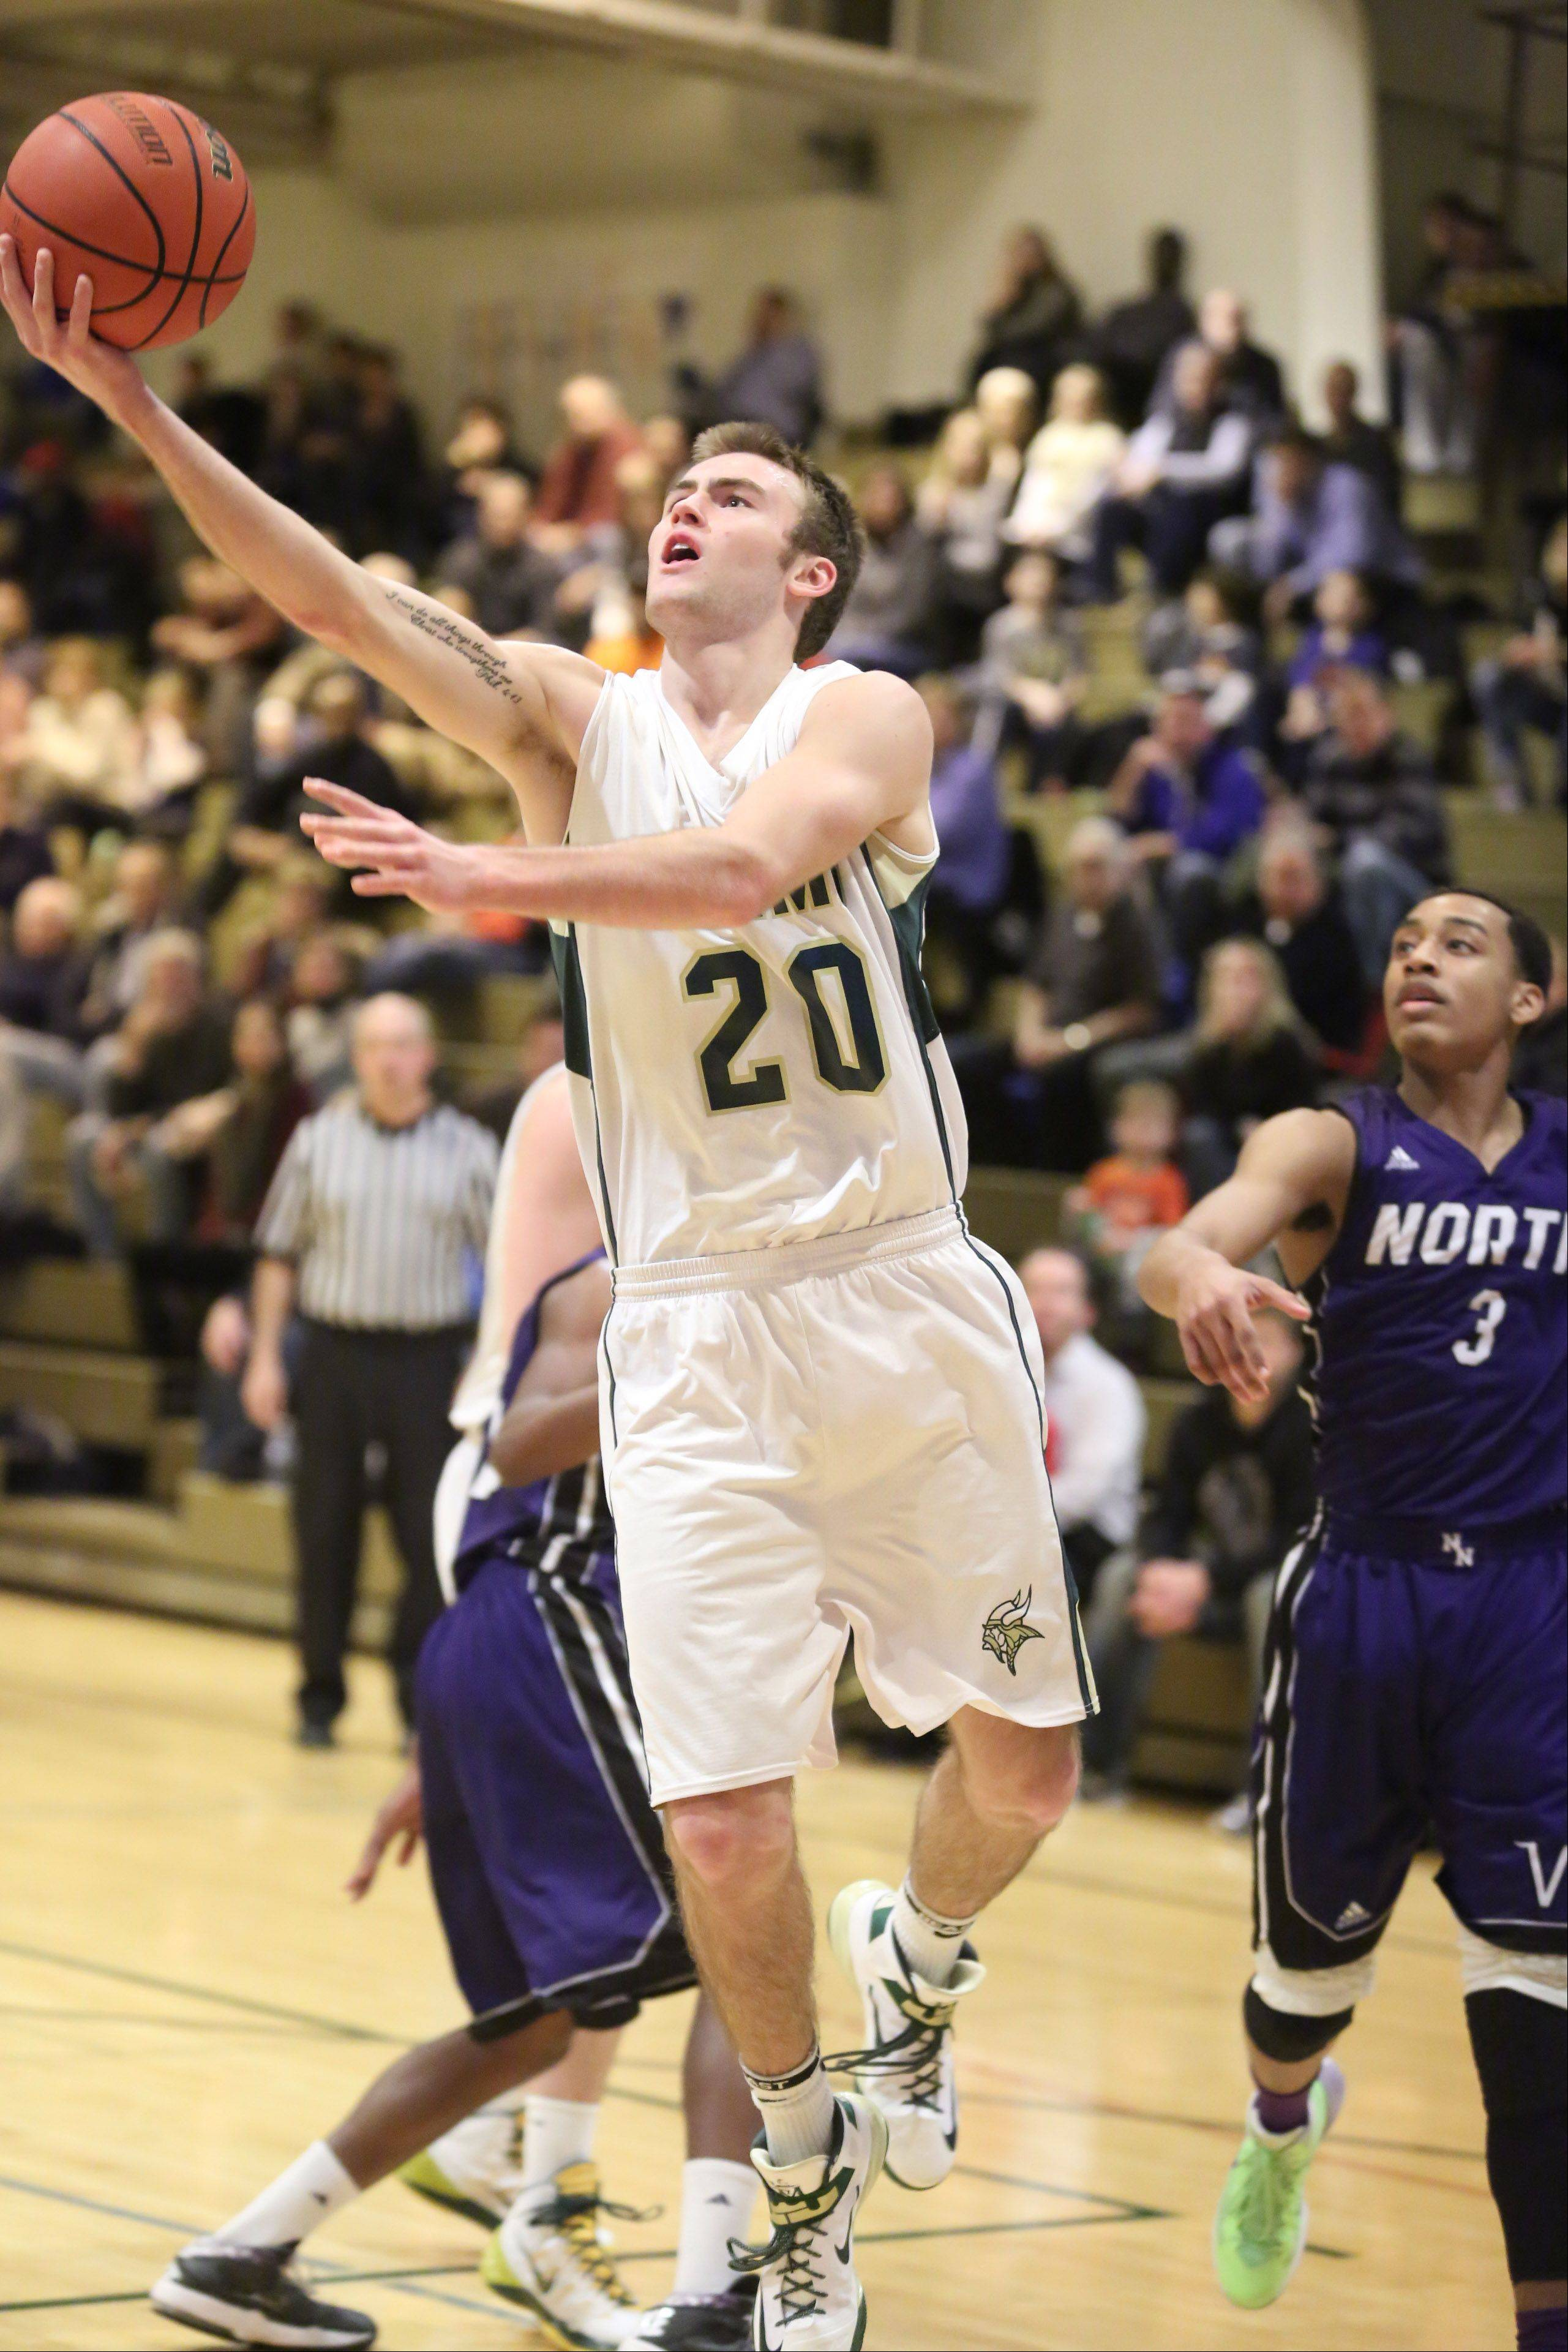 Fremd's Riley Glassmann drives past two Niles North defenders and shoots on Thursday at the Wheeling Hardwood Classic.